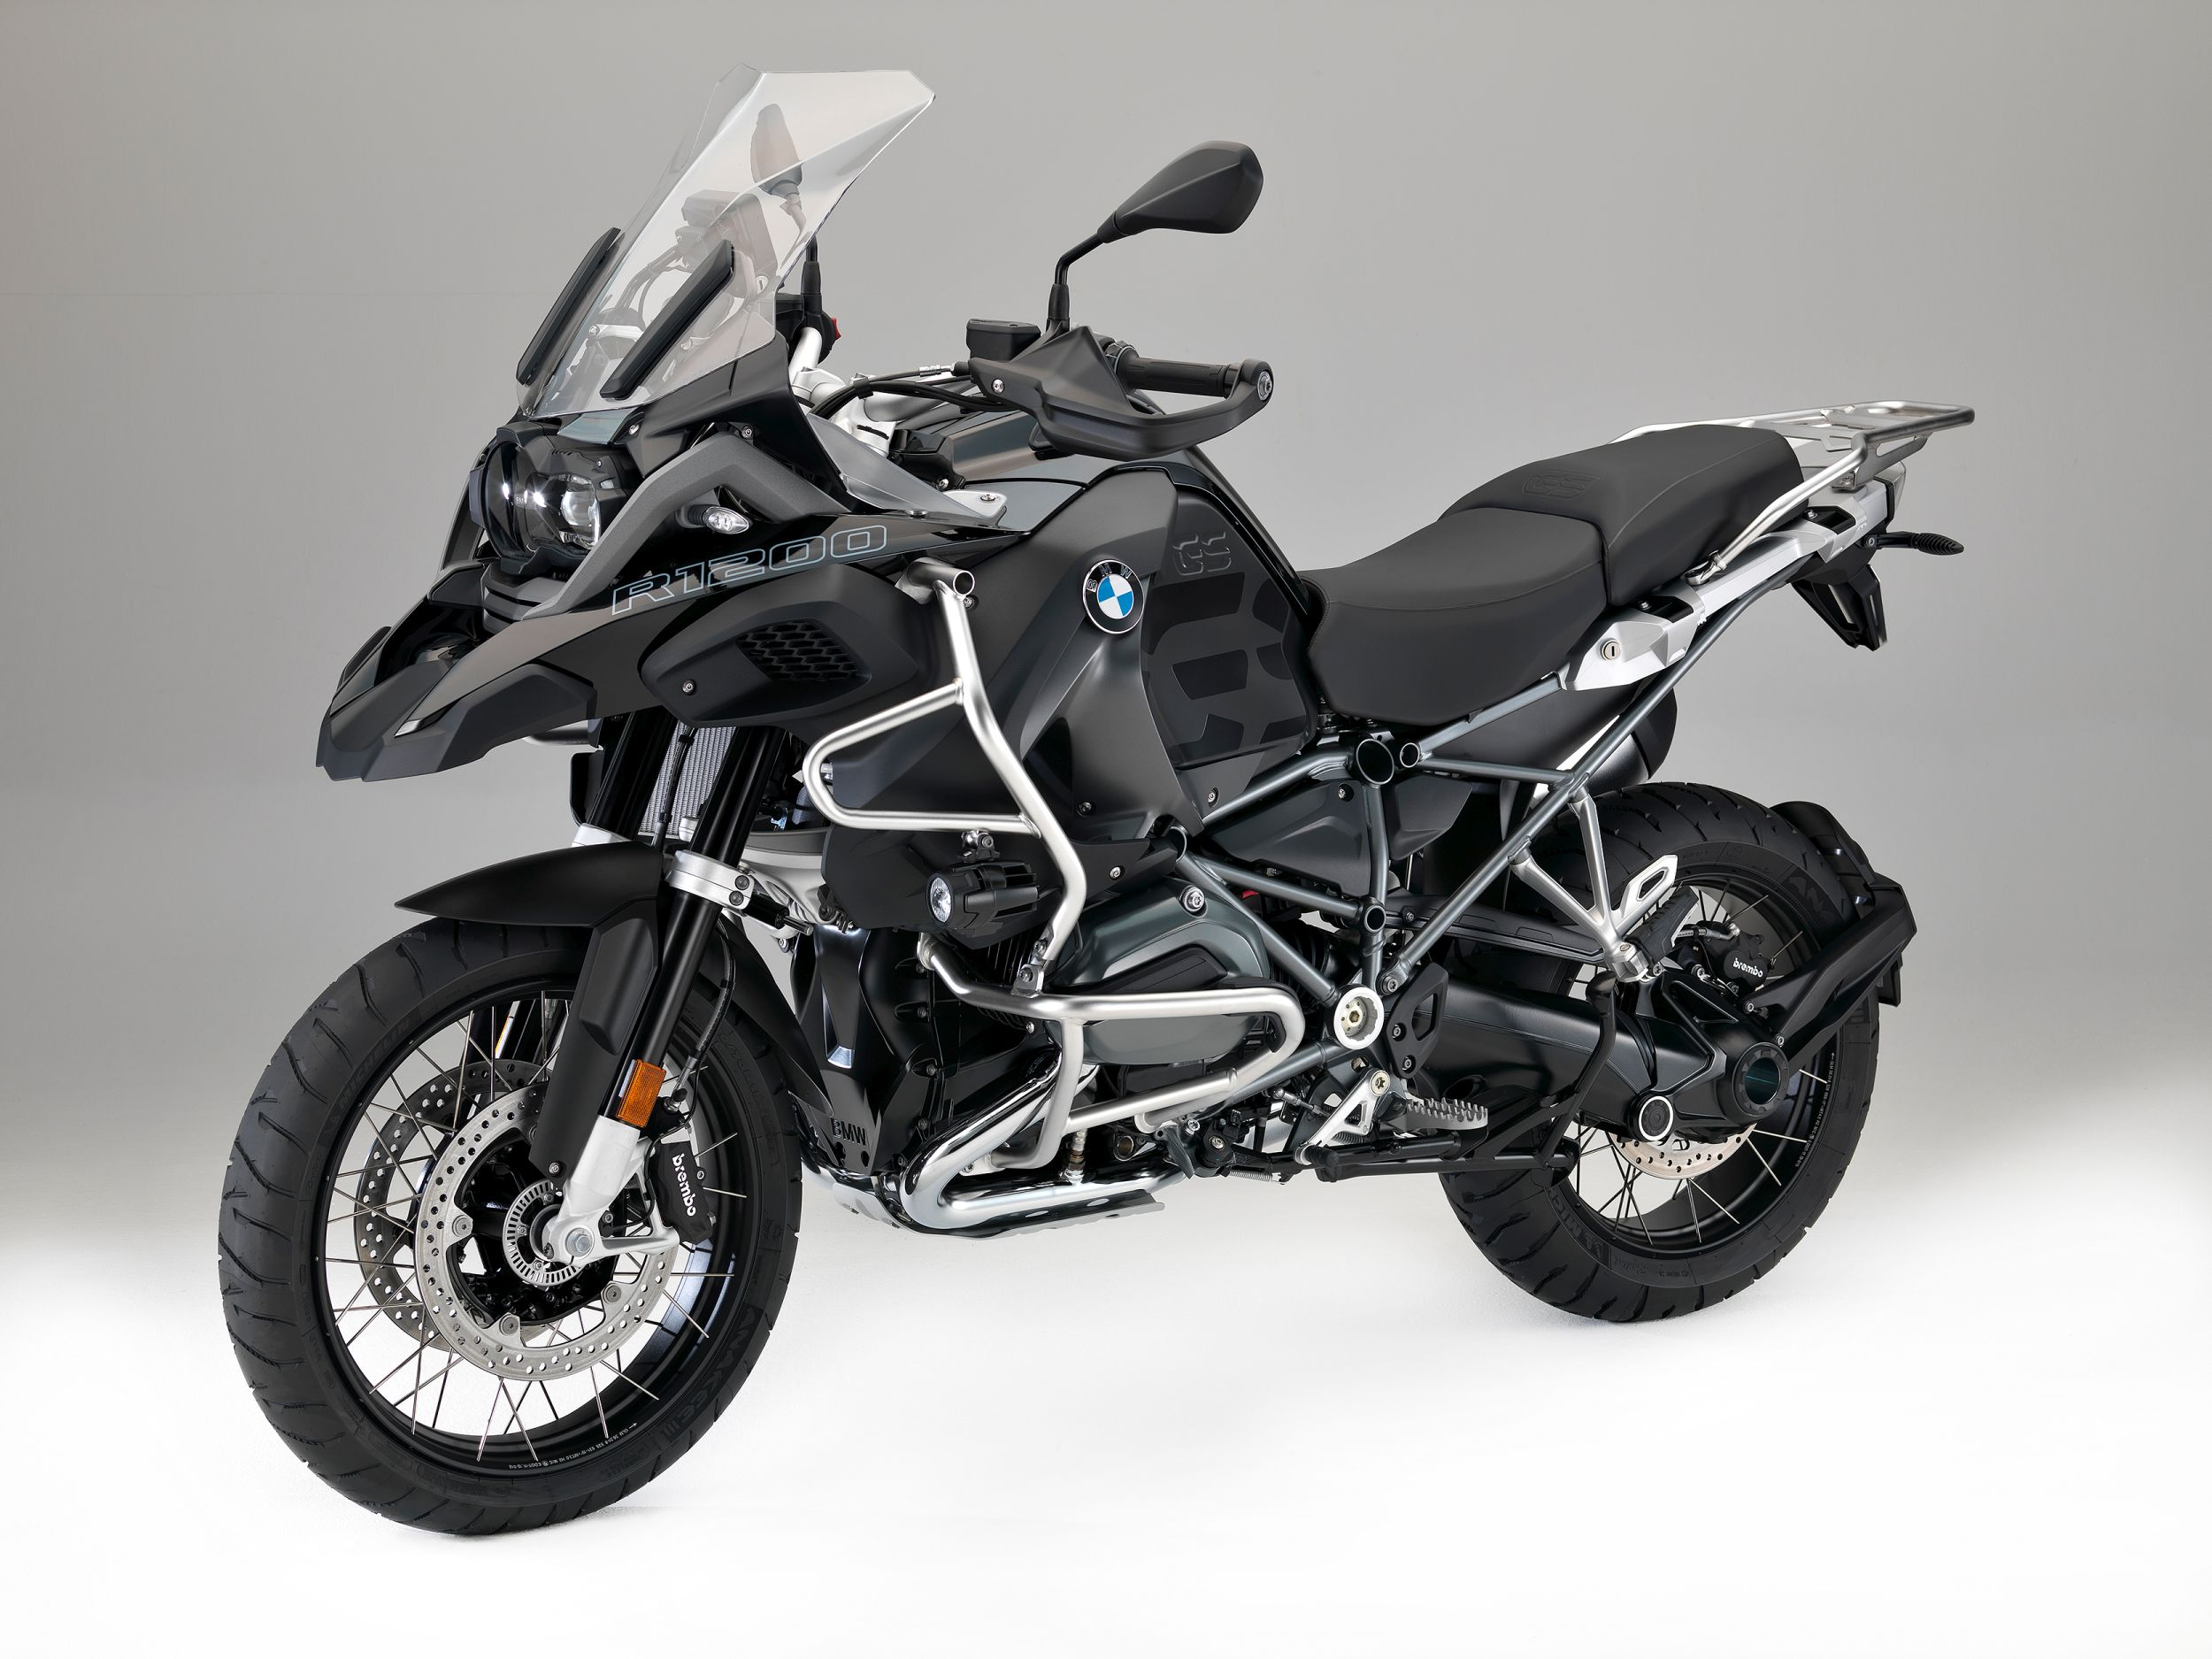 004 Exciting Bmw R 1200 Cl forum Cars Trend